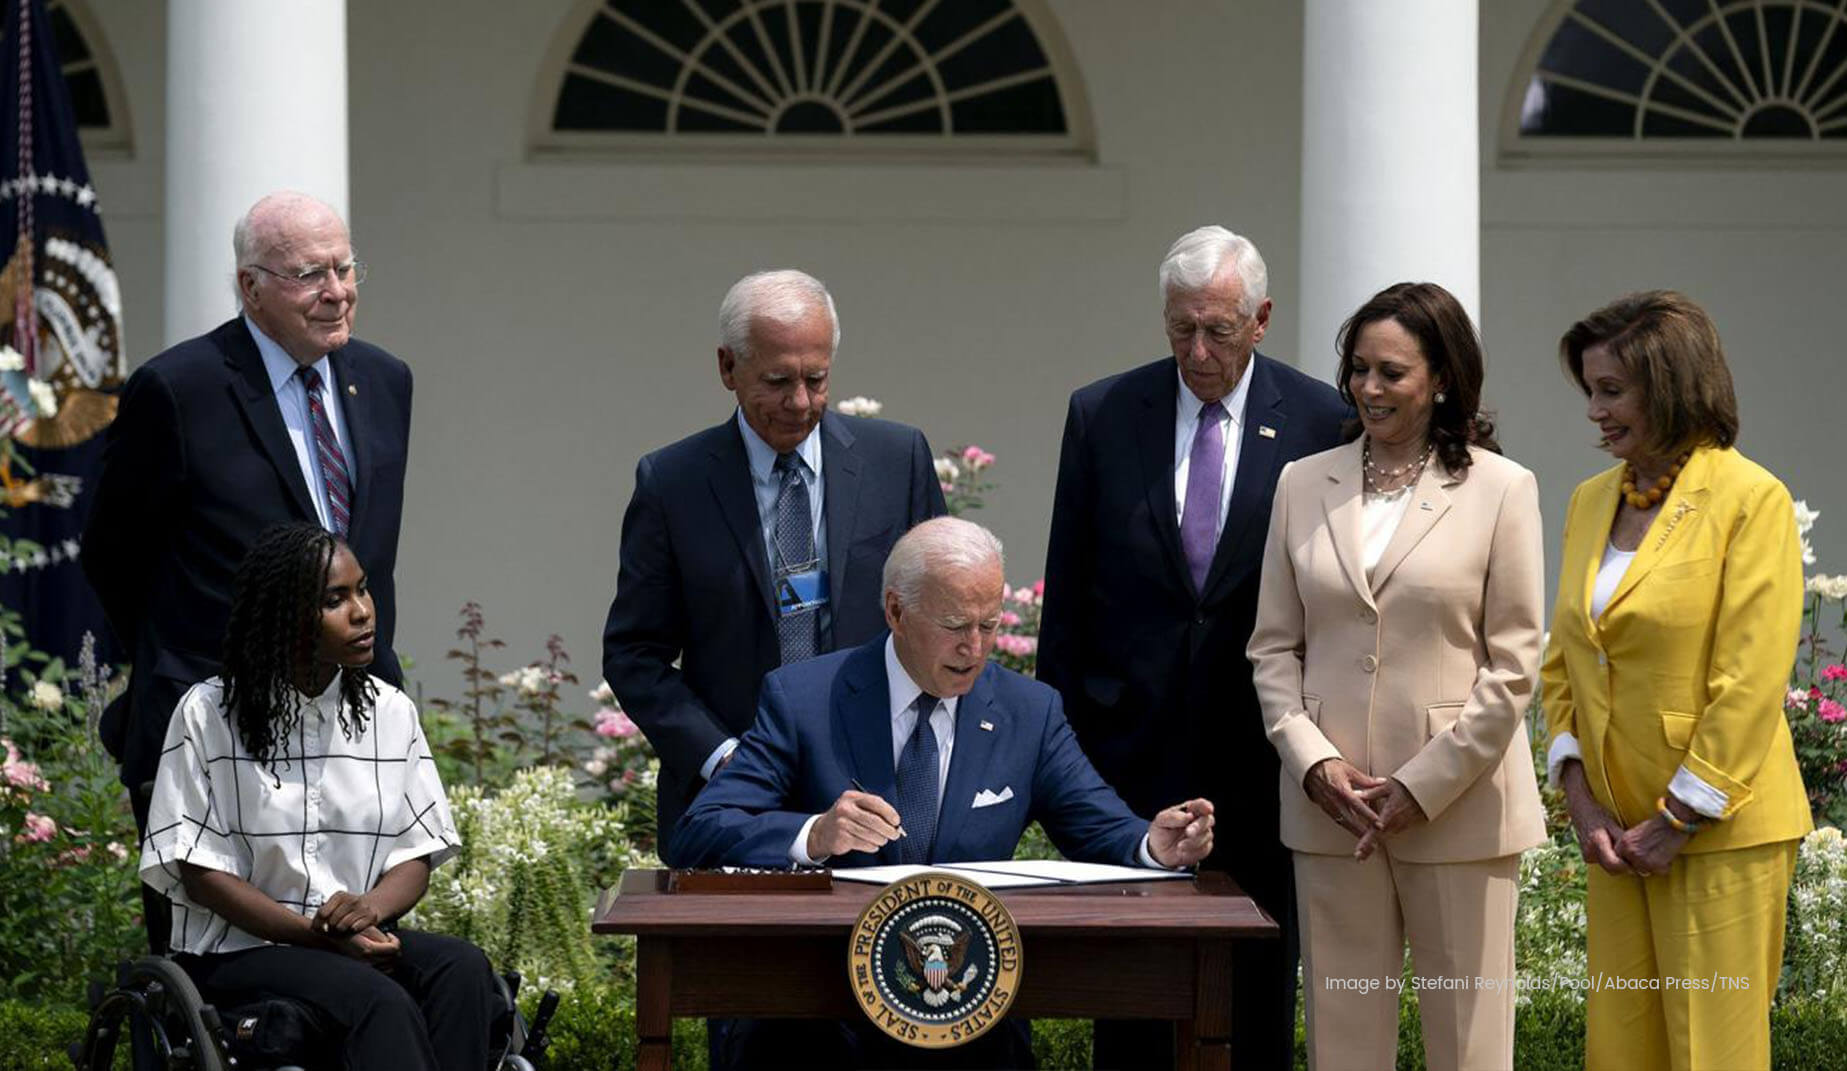 What You Need to Know About Biden's Disability Rights Plan